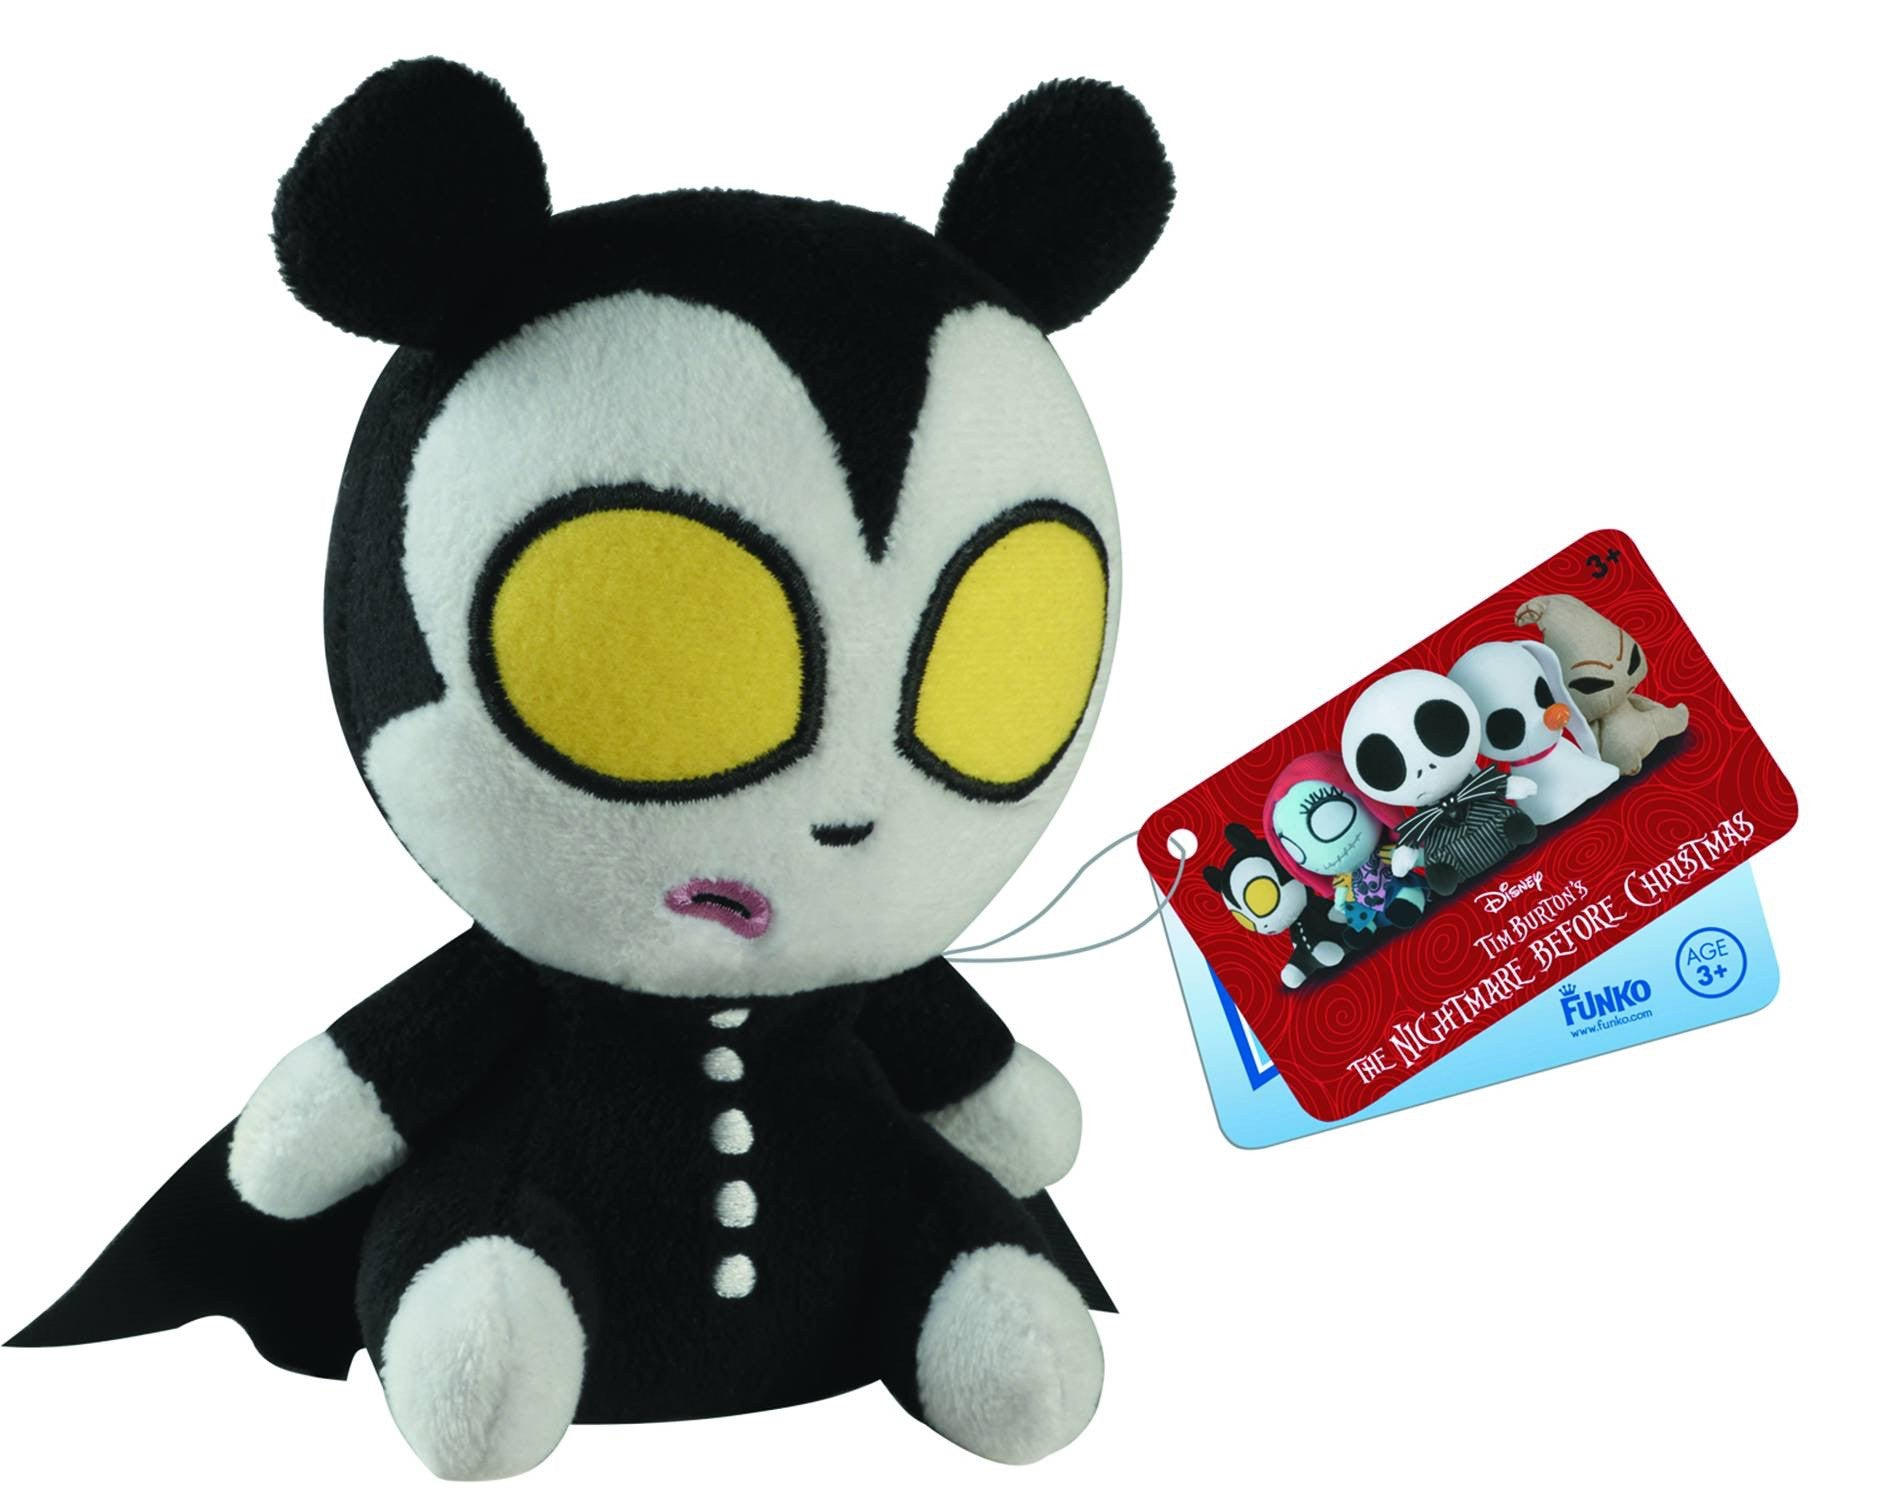 Mopeez Nightmare before Xmas Vampire Teddy Plush